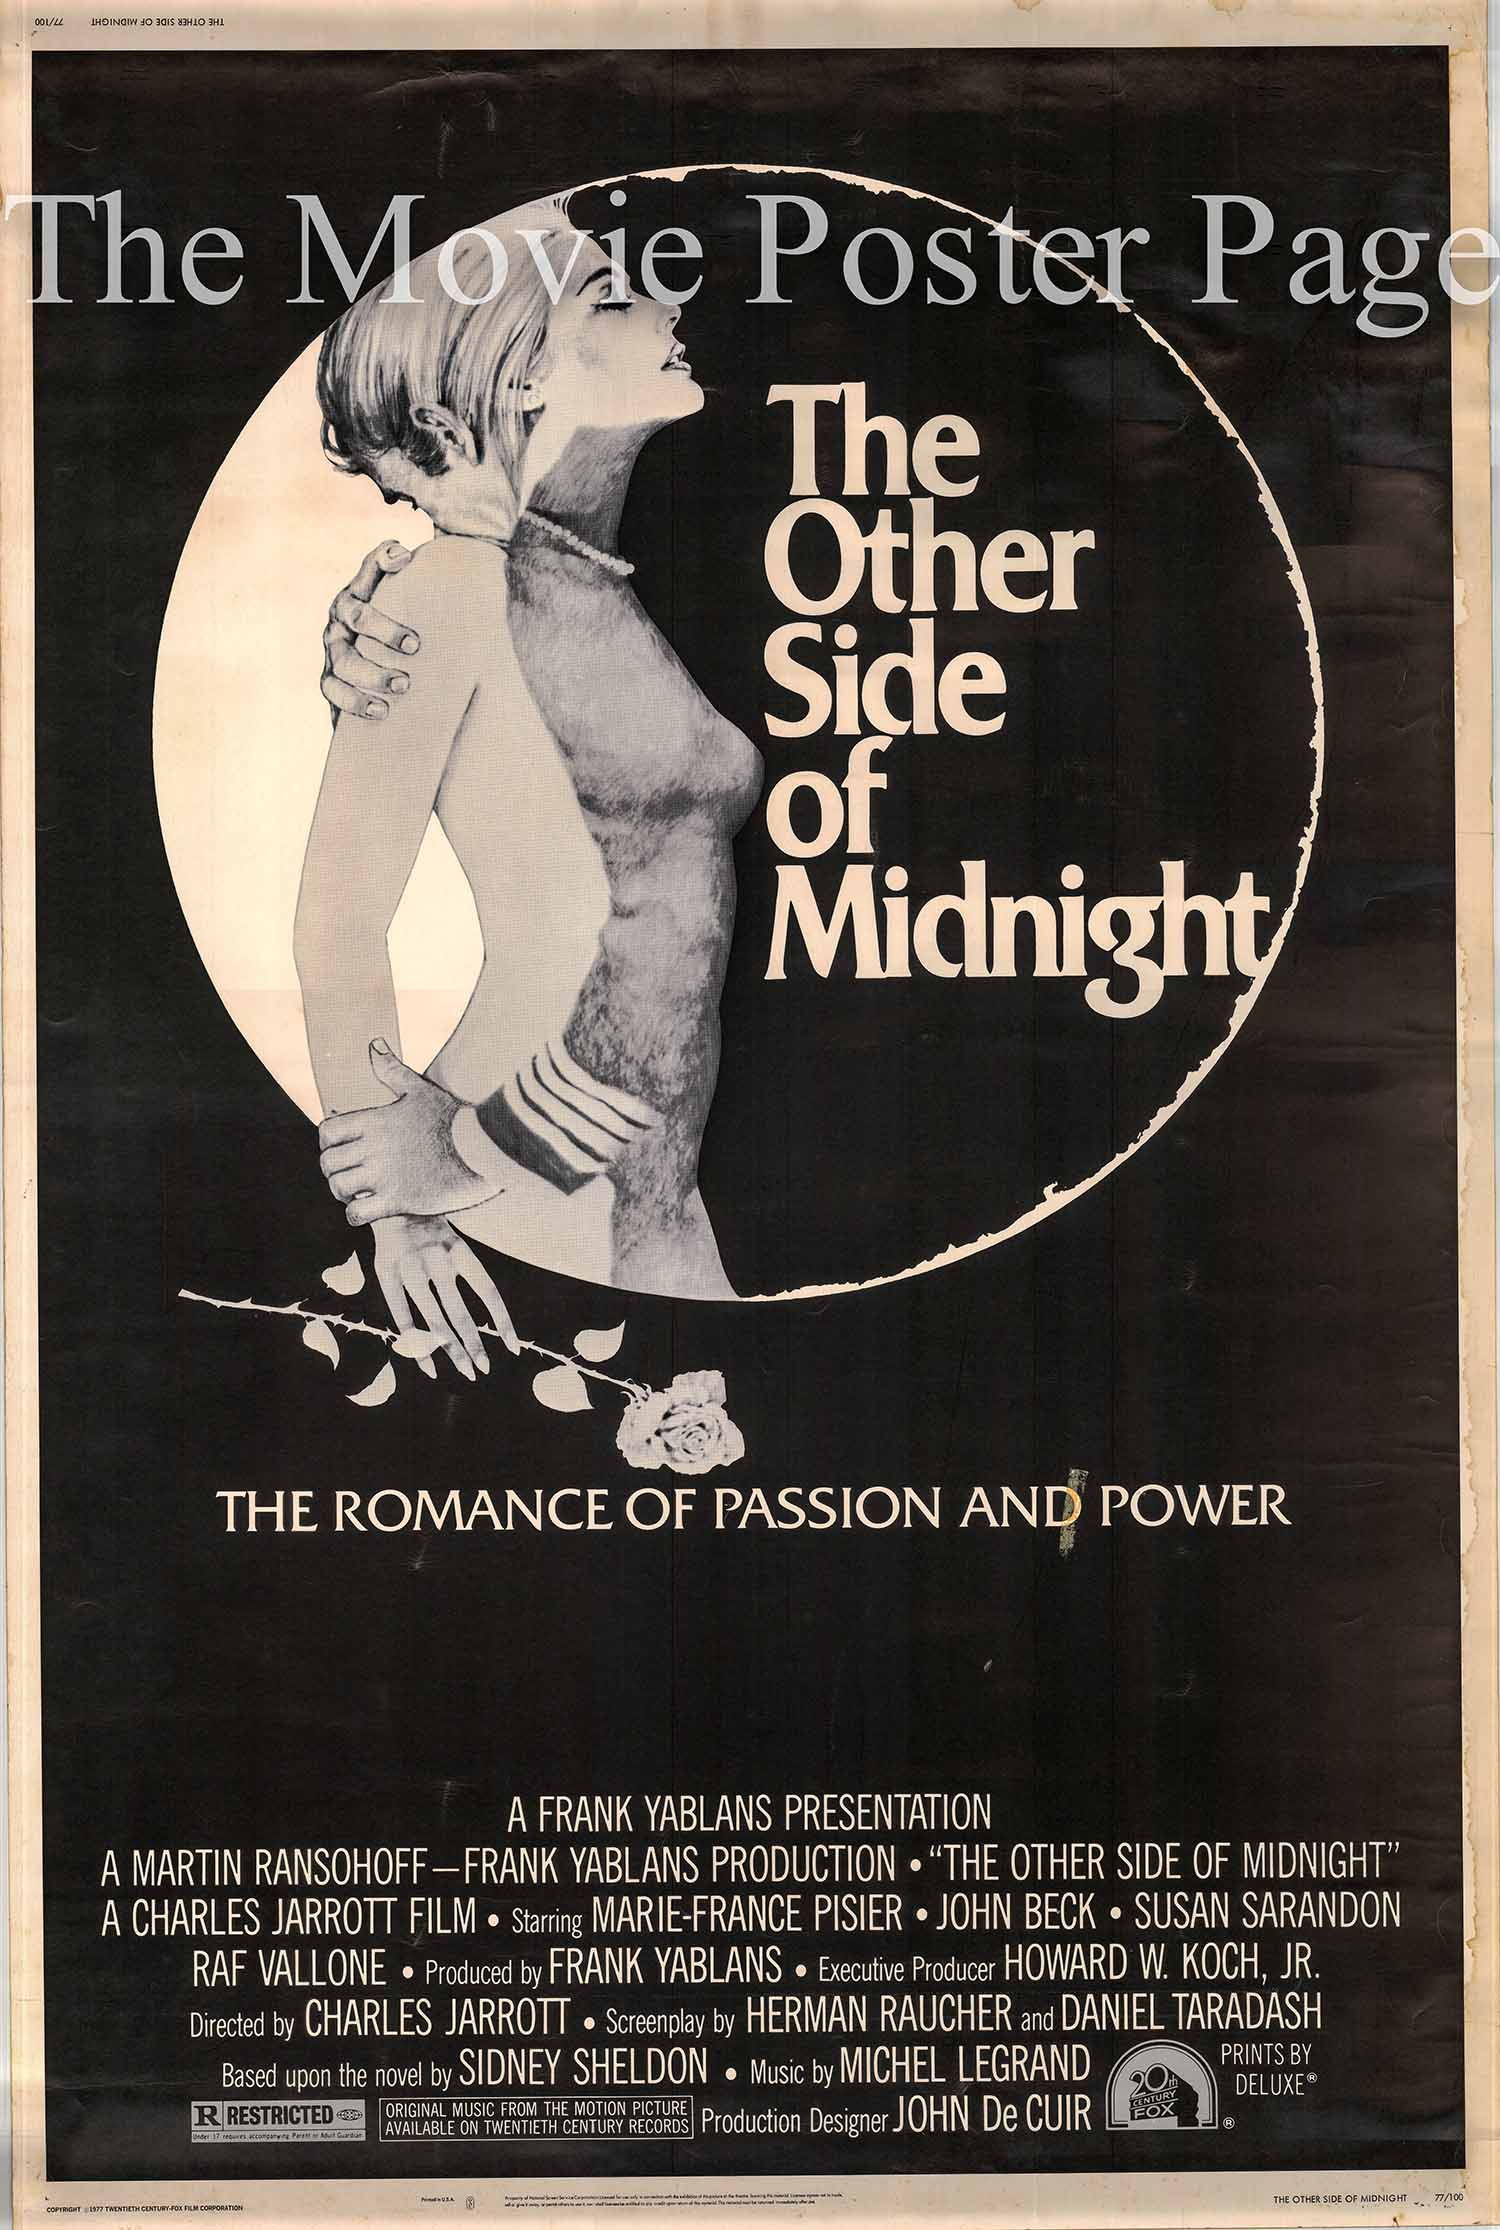 Pictured is a US 40x60 promotional poster for the 1977 Charles Jarrott film The Other Side of Midnight starring Marie-France Pisier.